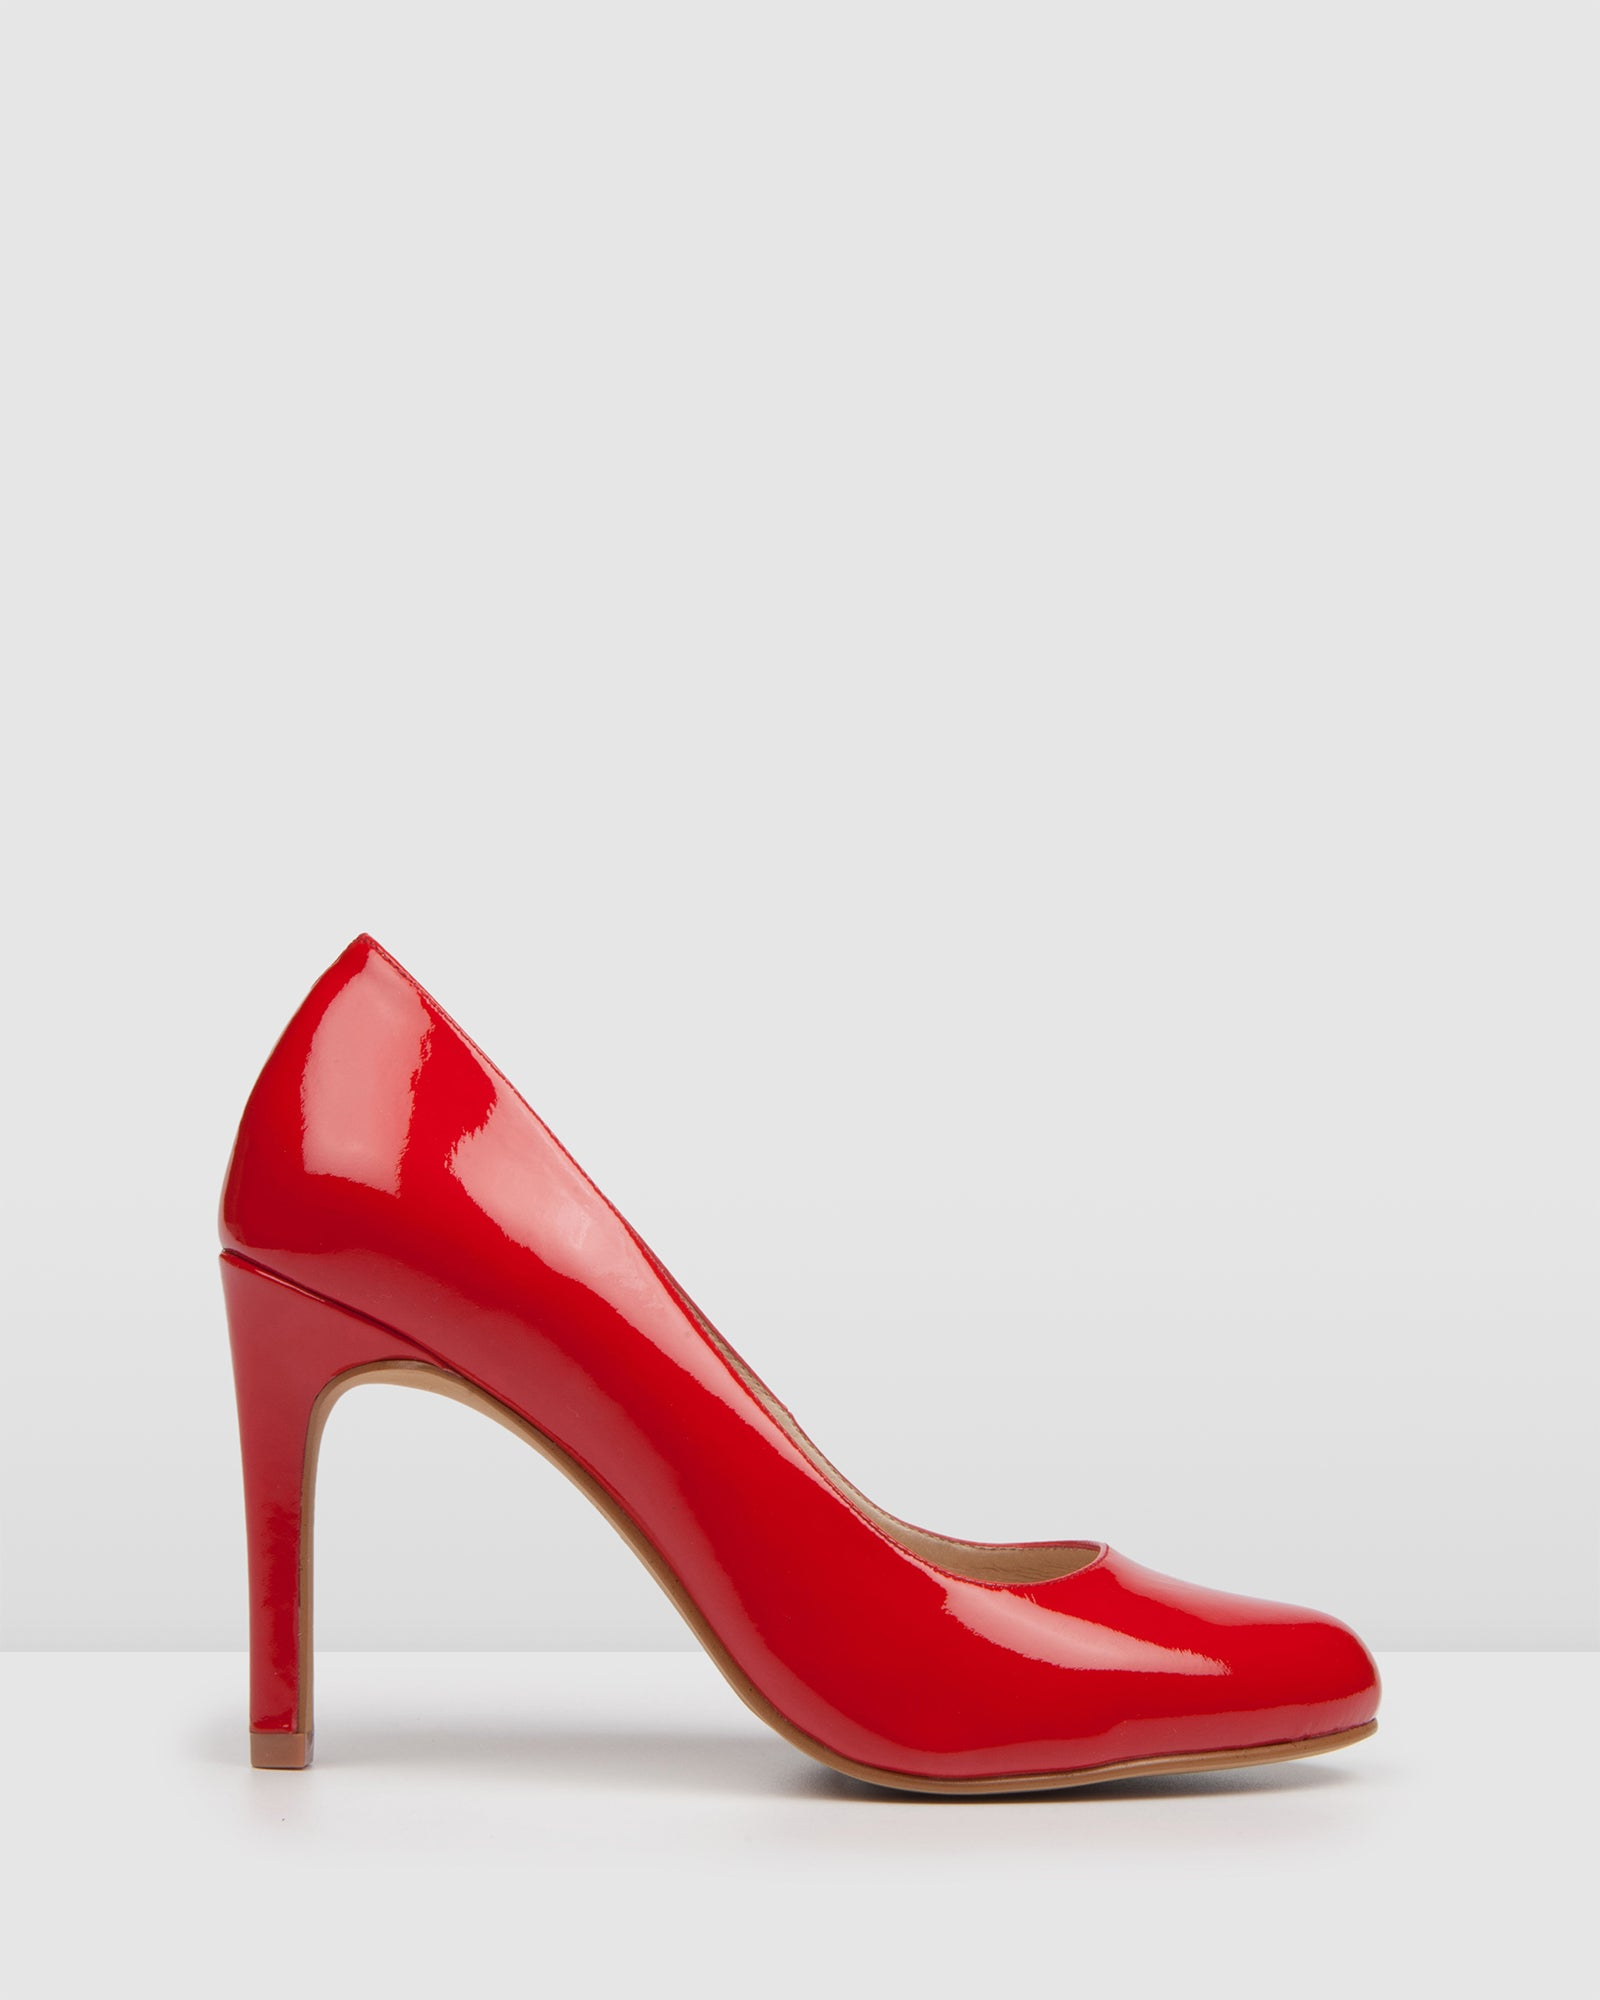 QUIP HIGH HEELS RED PATENT